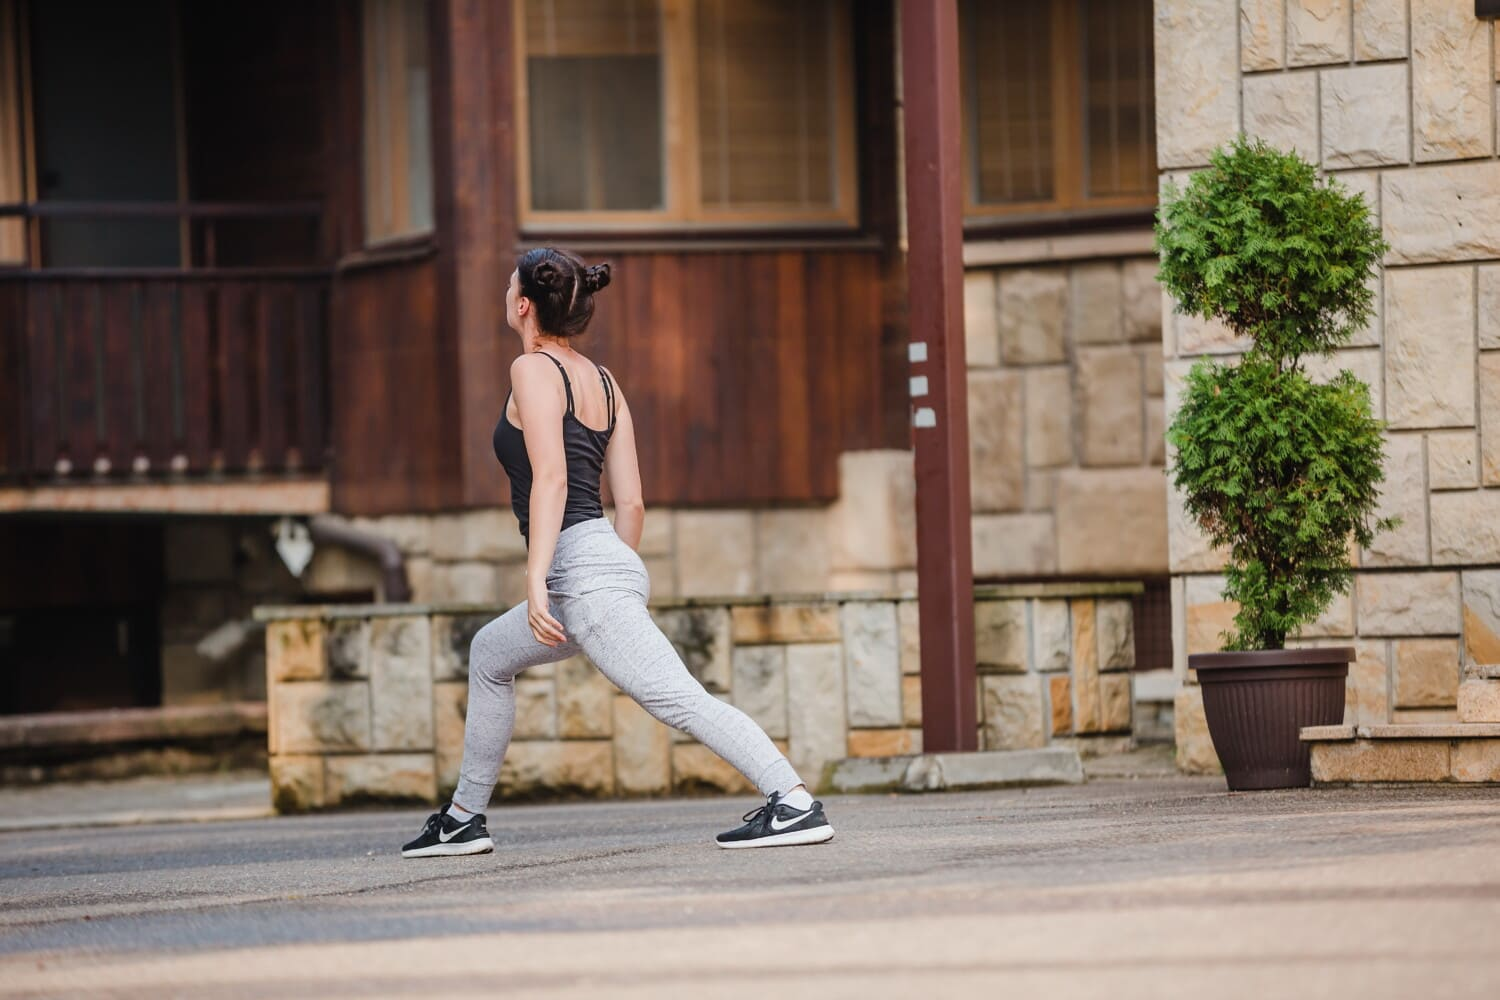 fitness, exercise, young woman, athletic, recreation, street, woman, sport, girl, architecture